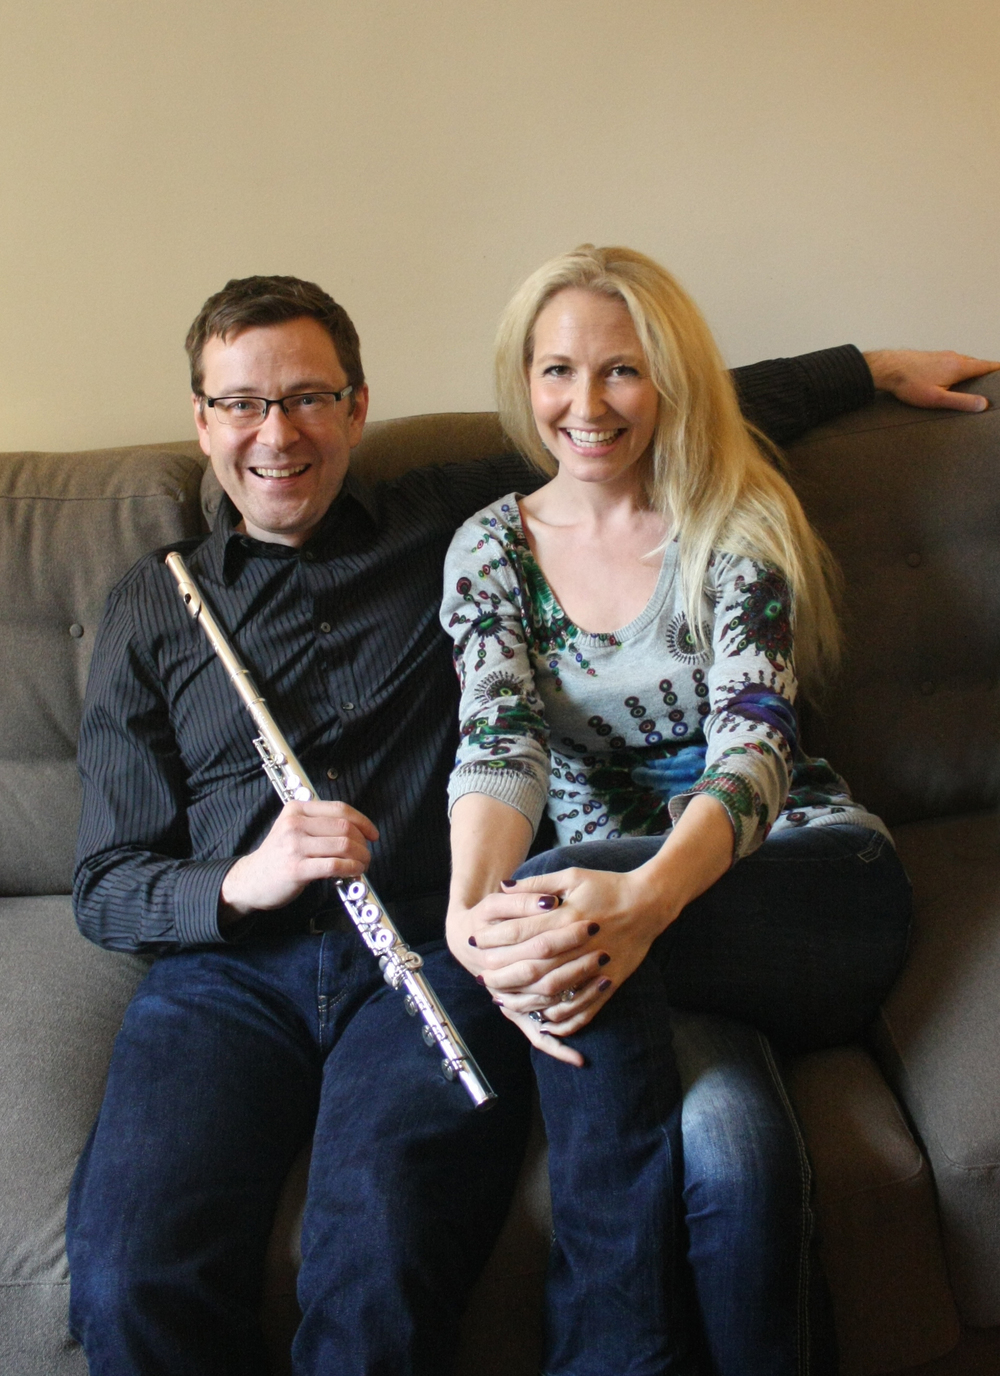 Stefán Höskuldsson and Dísella Làrusdóttir (Photo by Stephanie Mortimore)